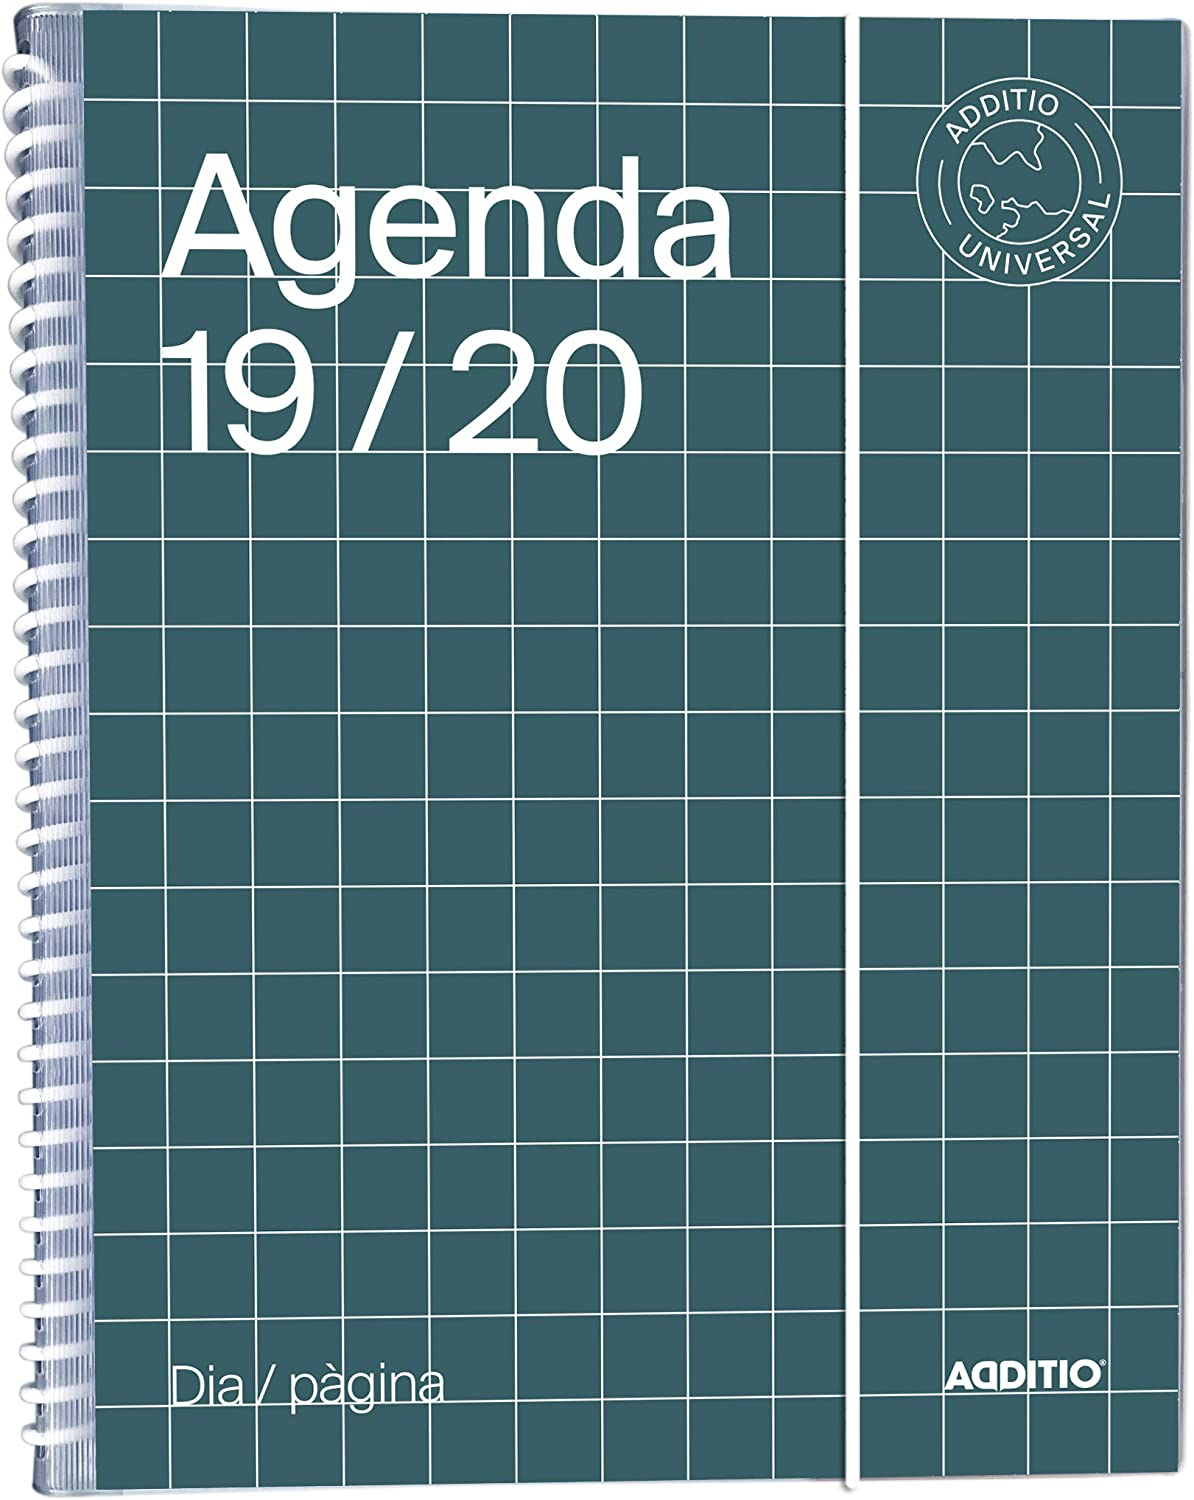 Agenda Universal catalán 2019-20 Día Página Additio: Amazon ...